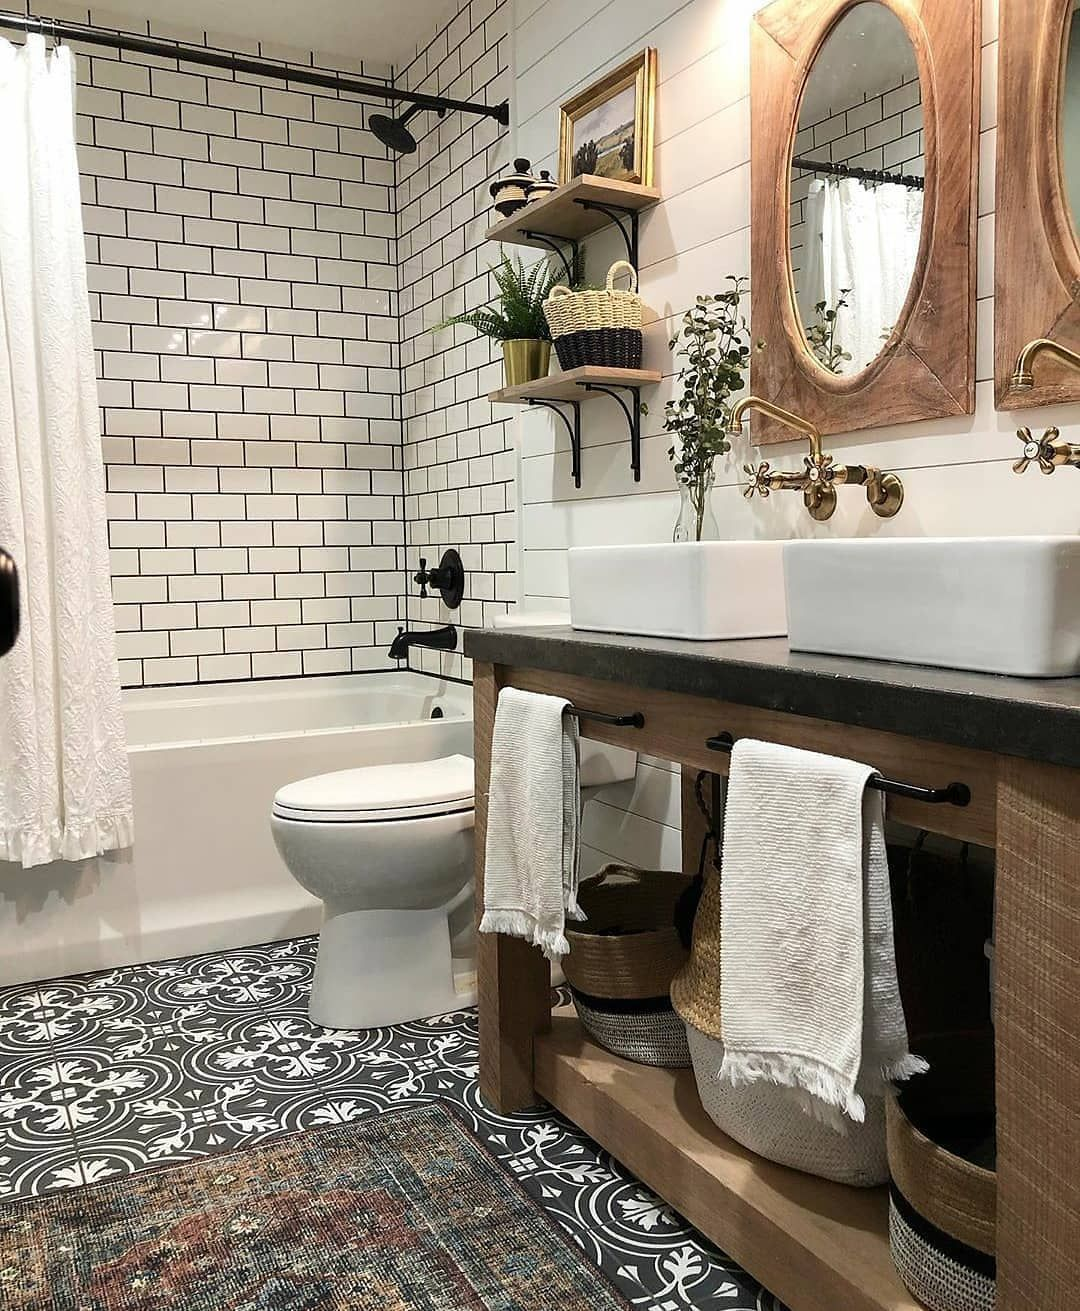 Farmhouse Charm On Instagram If You Could Snag 1 Piece From This Gorgeous Rustic Bathroom What Woul Bathroom Farmhouse Style Bathrooms Remodel Bathroom Pirate ship bathroom decor